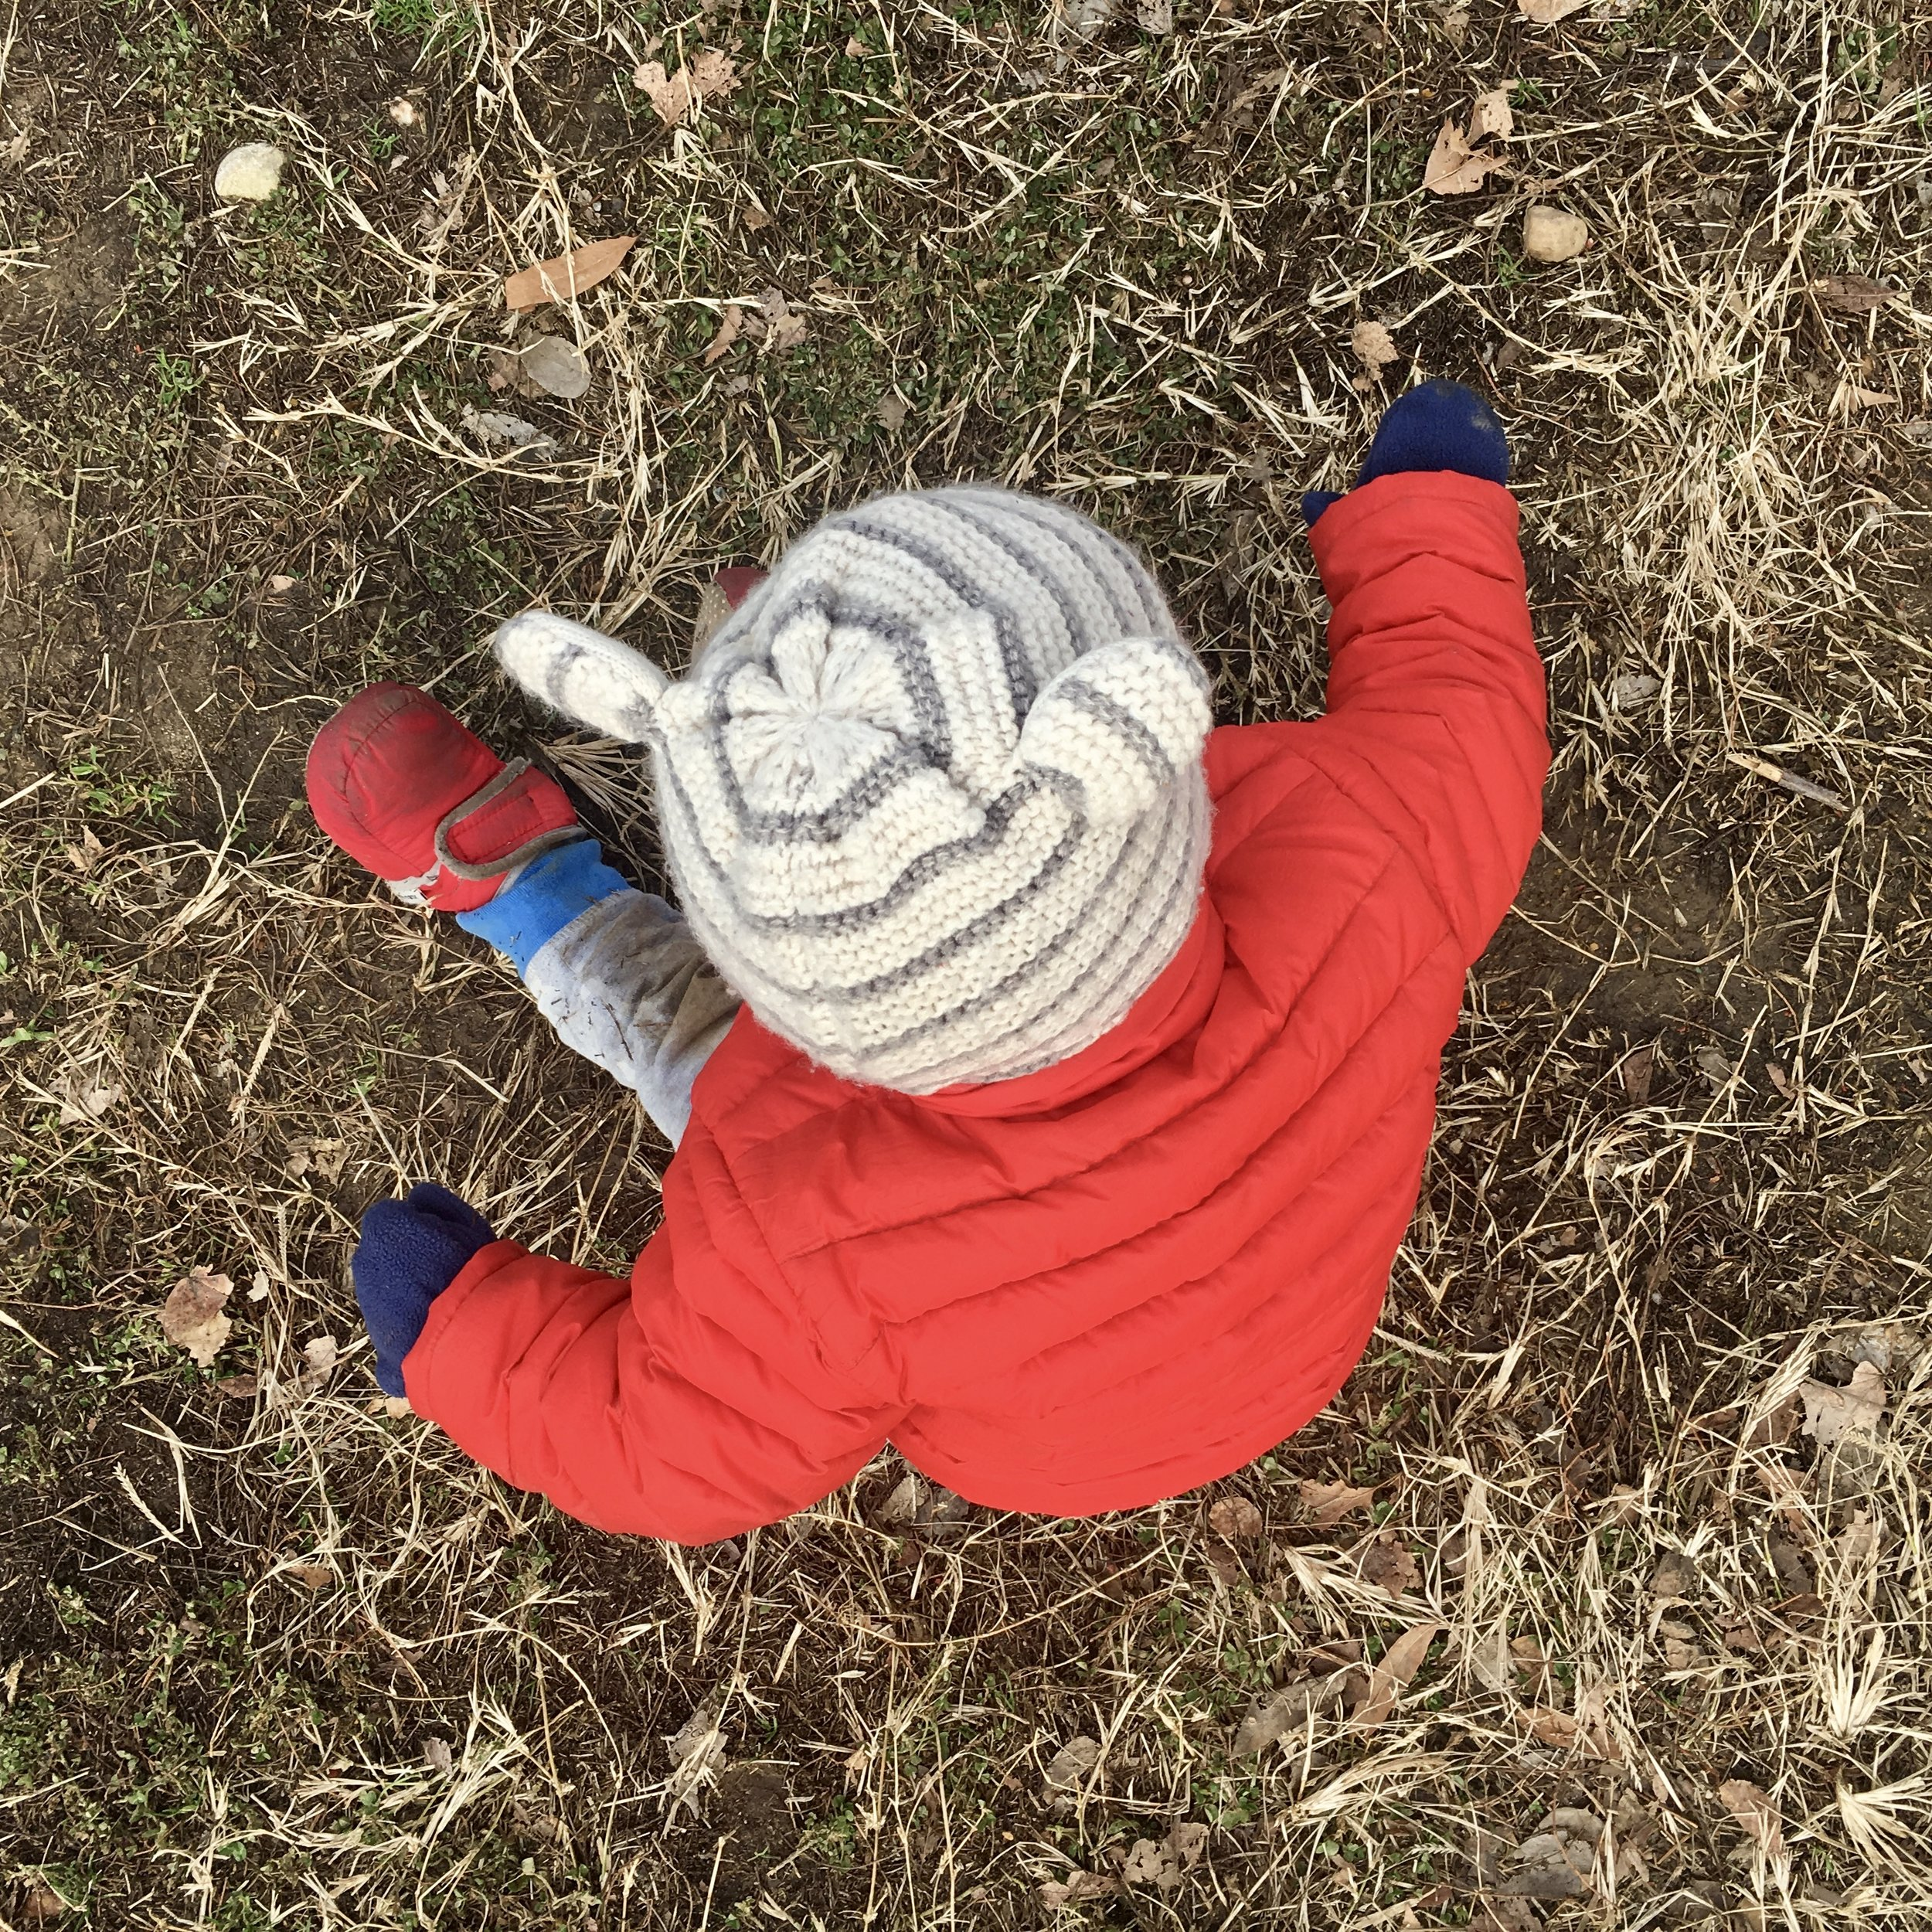 Image: a baby in winter clothes sits in the dirt and dead grass.